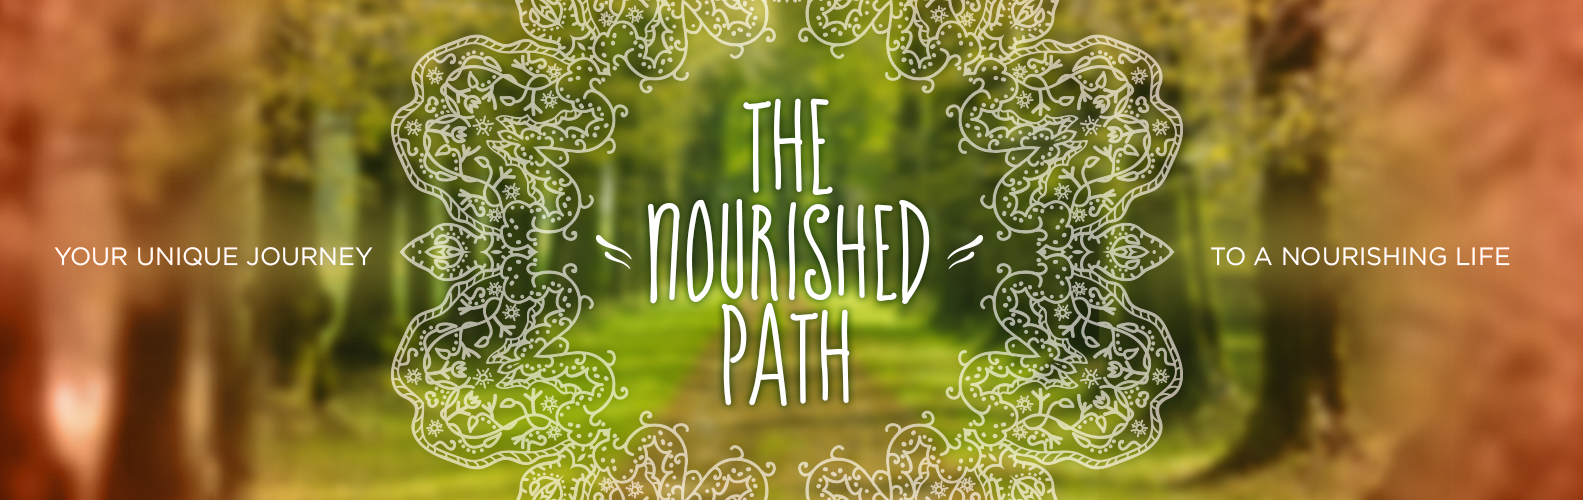 the-nourished-path-1